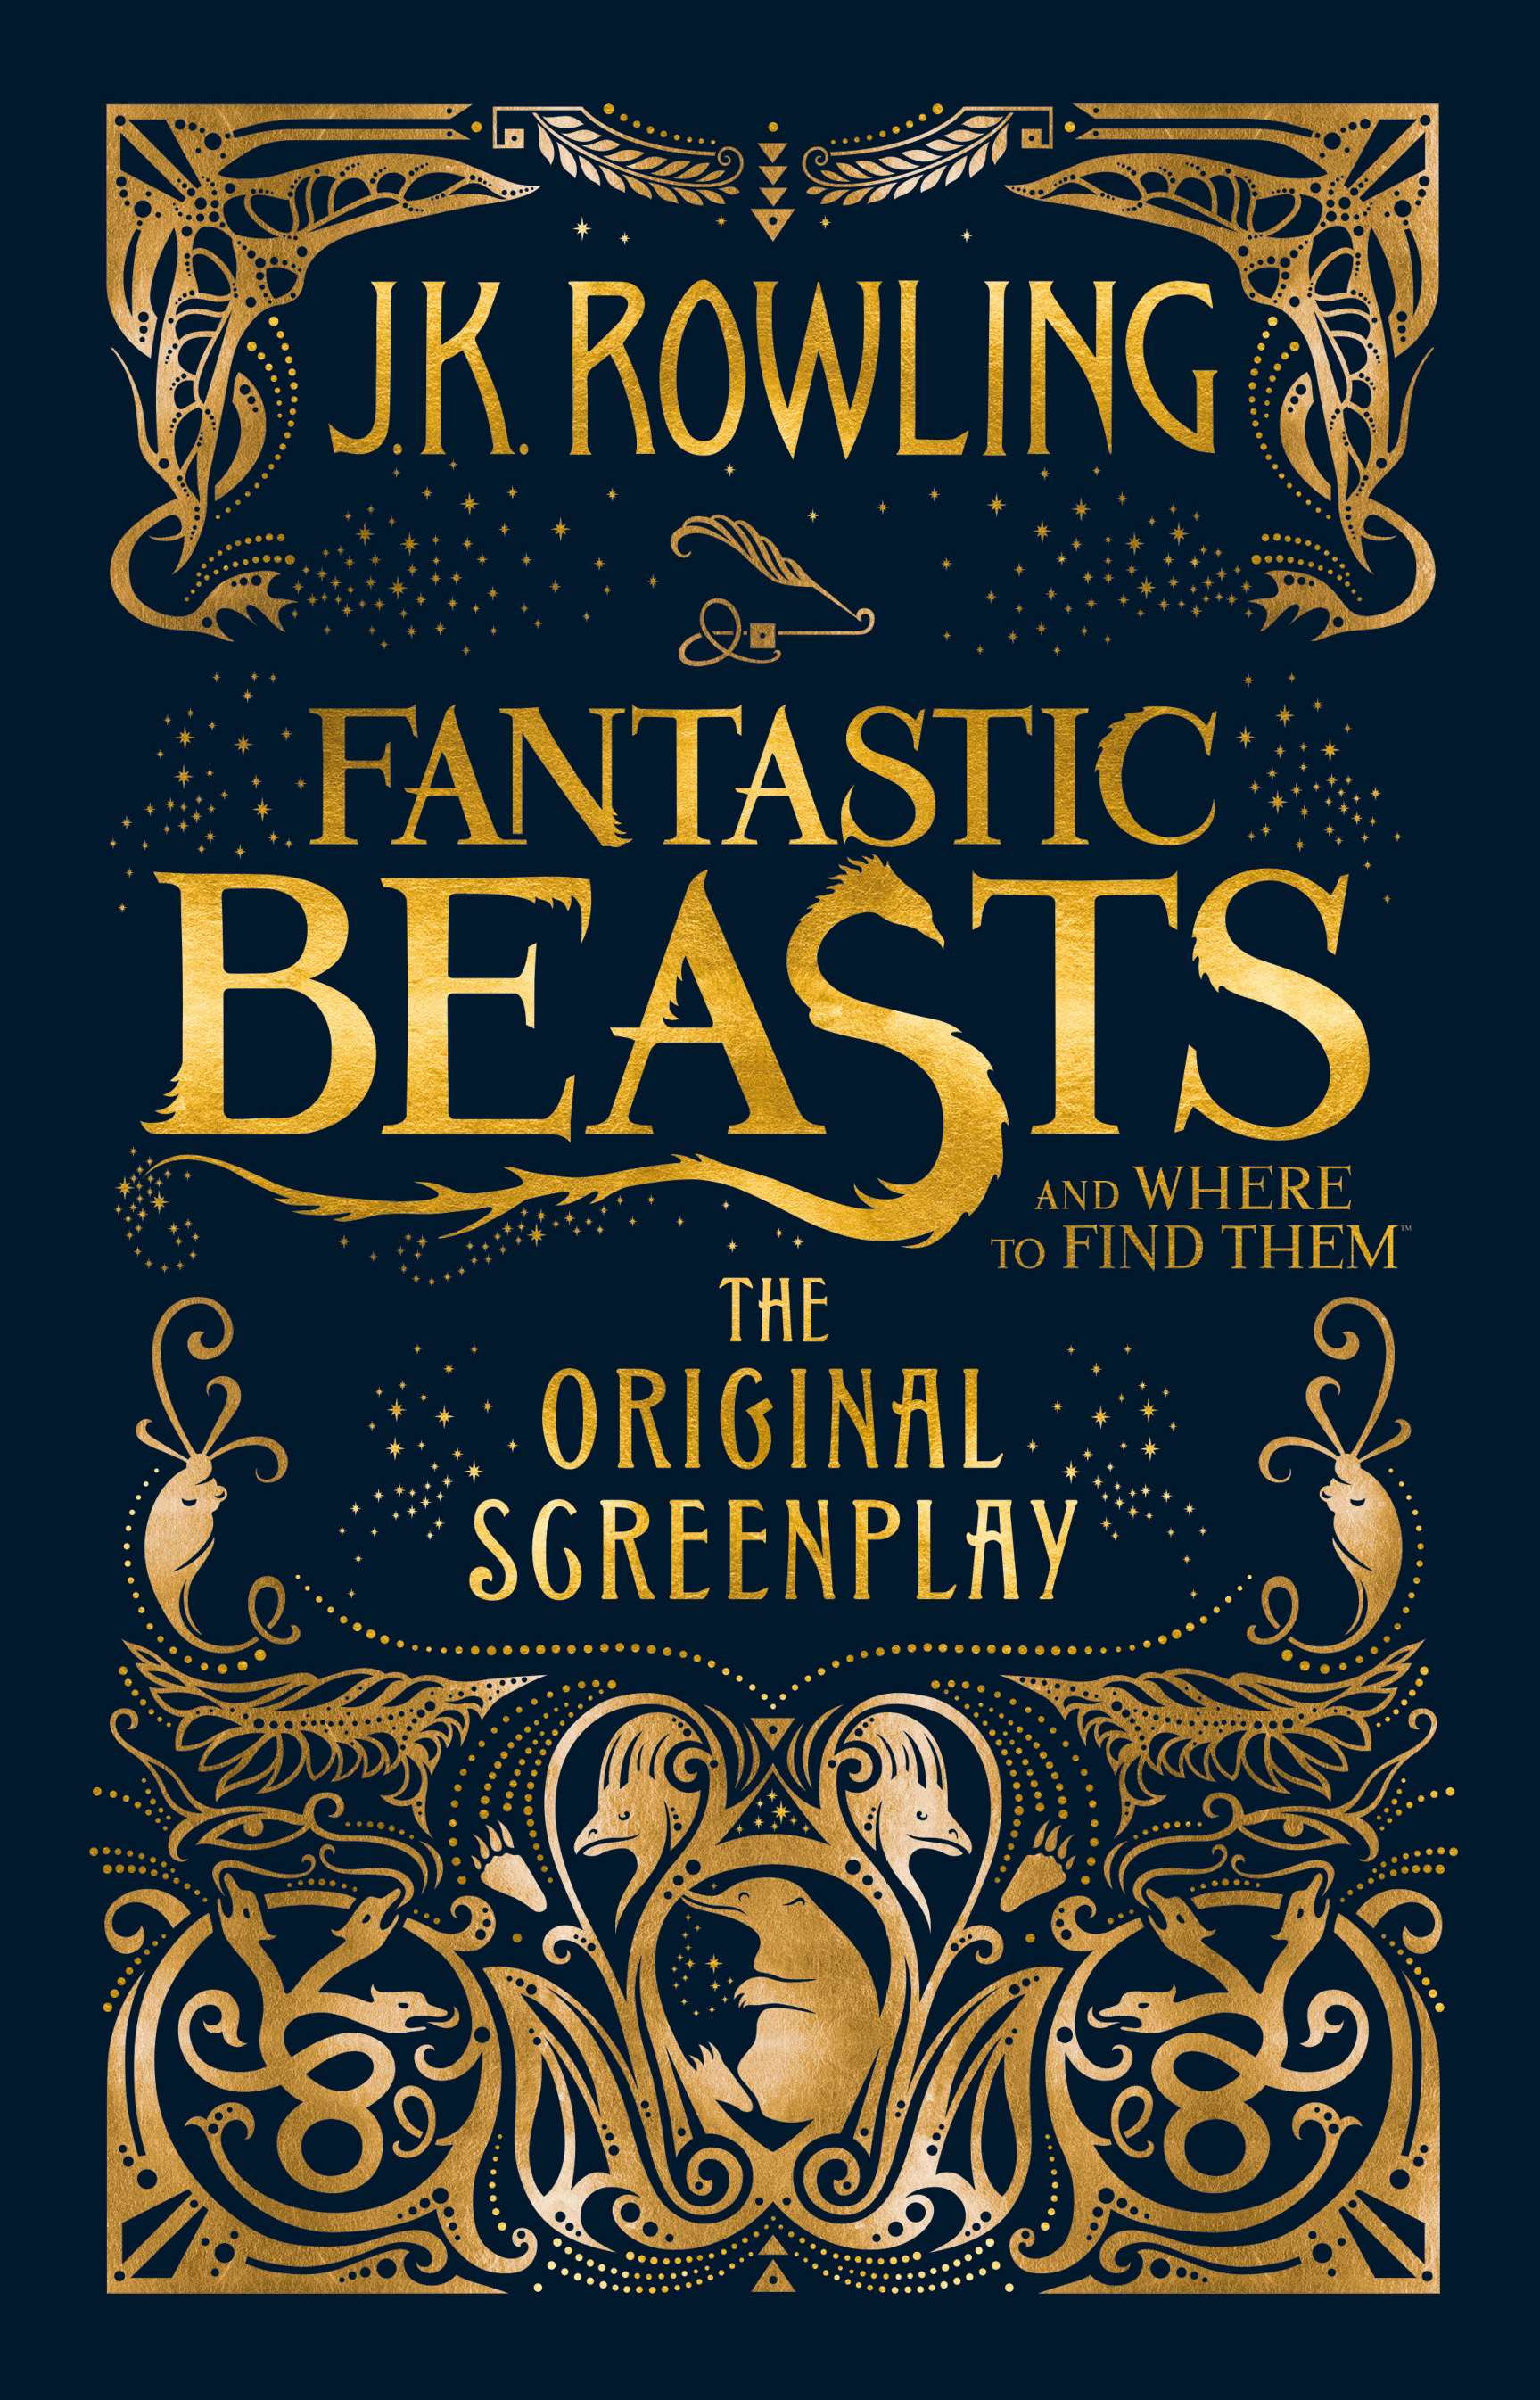 Fantastic Beasts and Where to Find Them: The Original Screenplay by J.K. Rowling, ISBN: 9781408708989